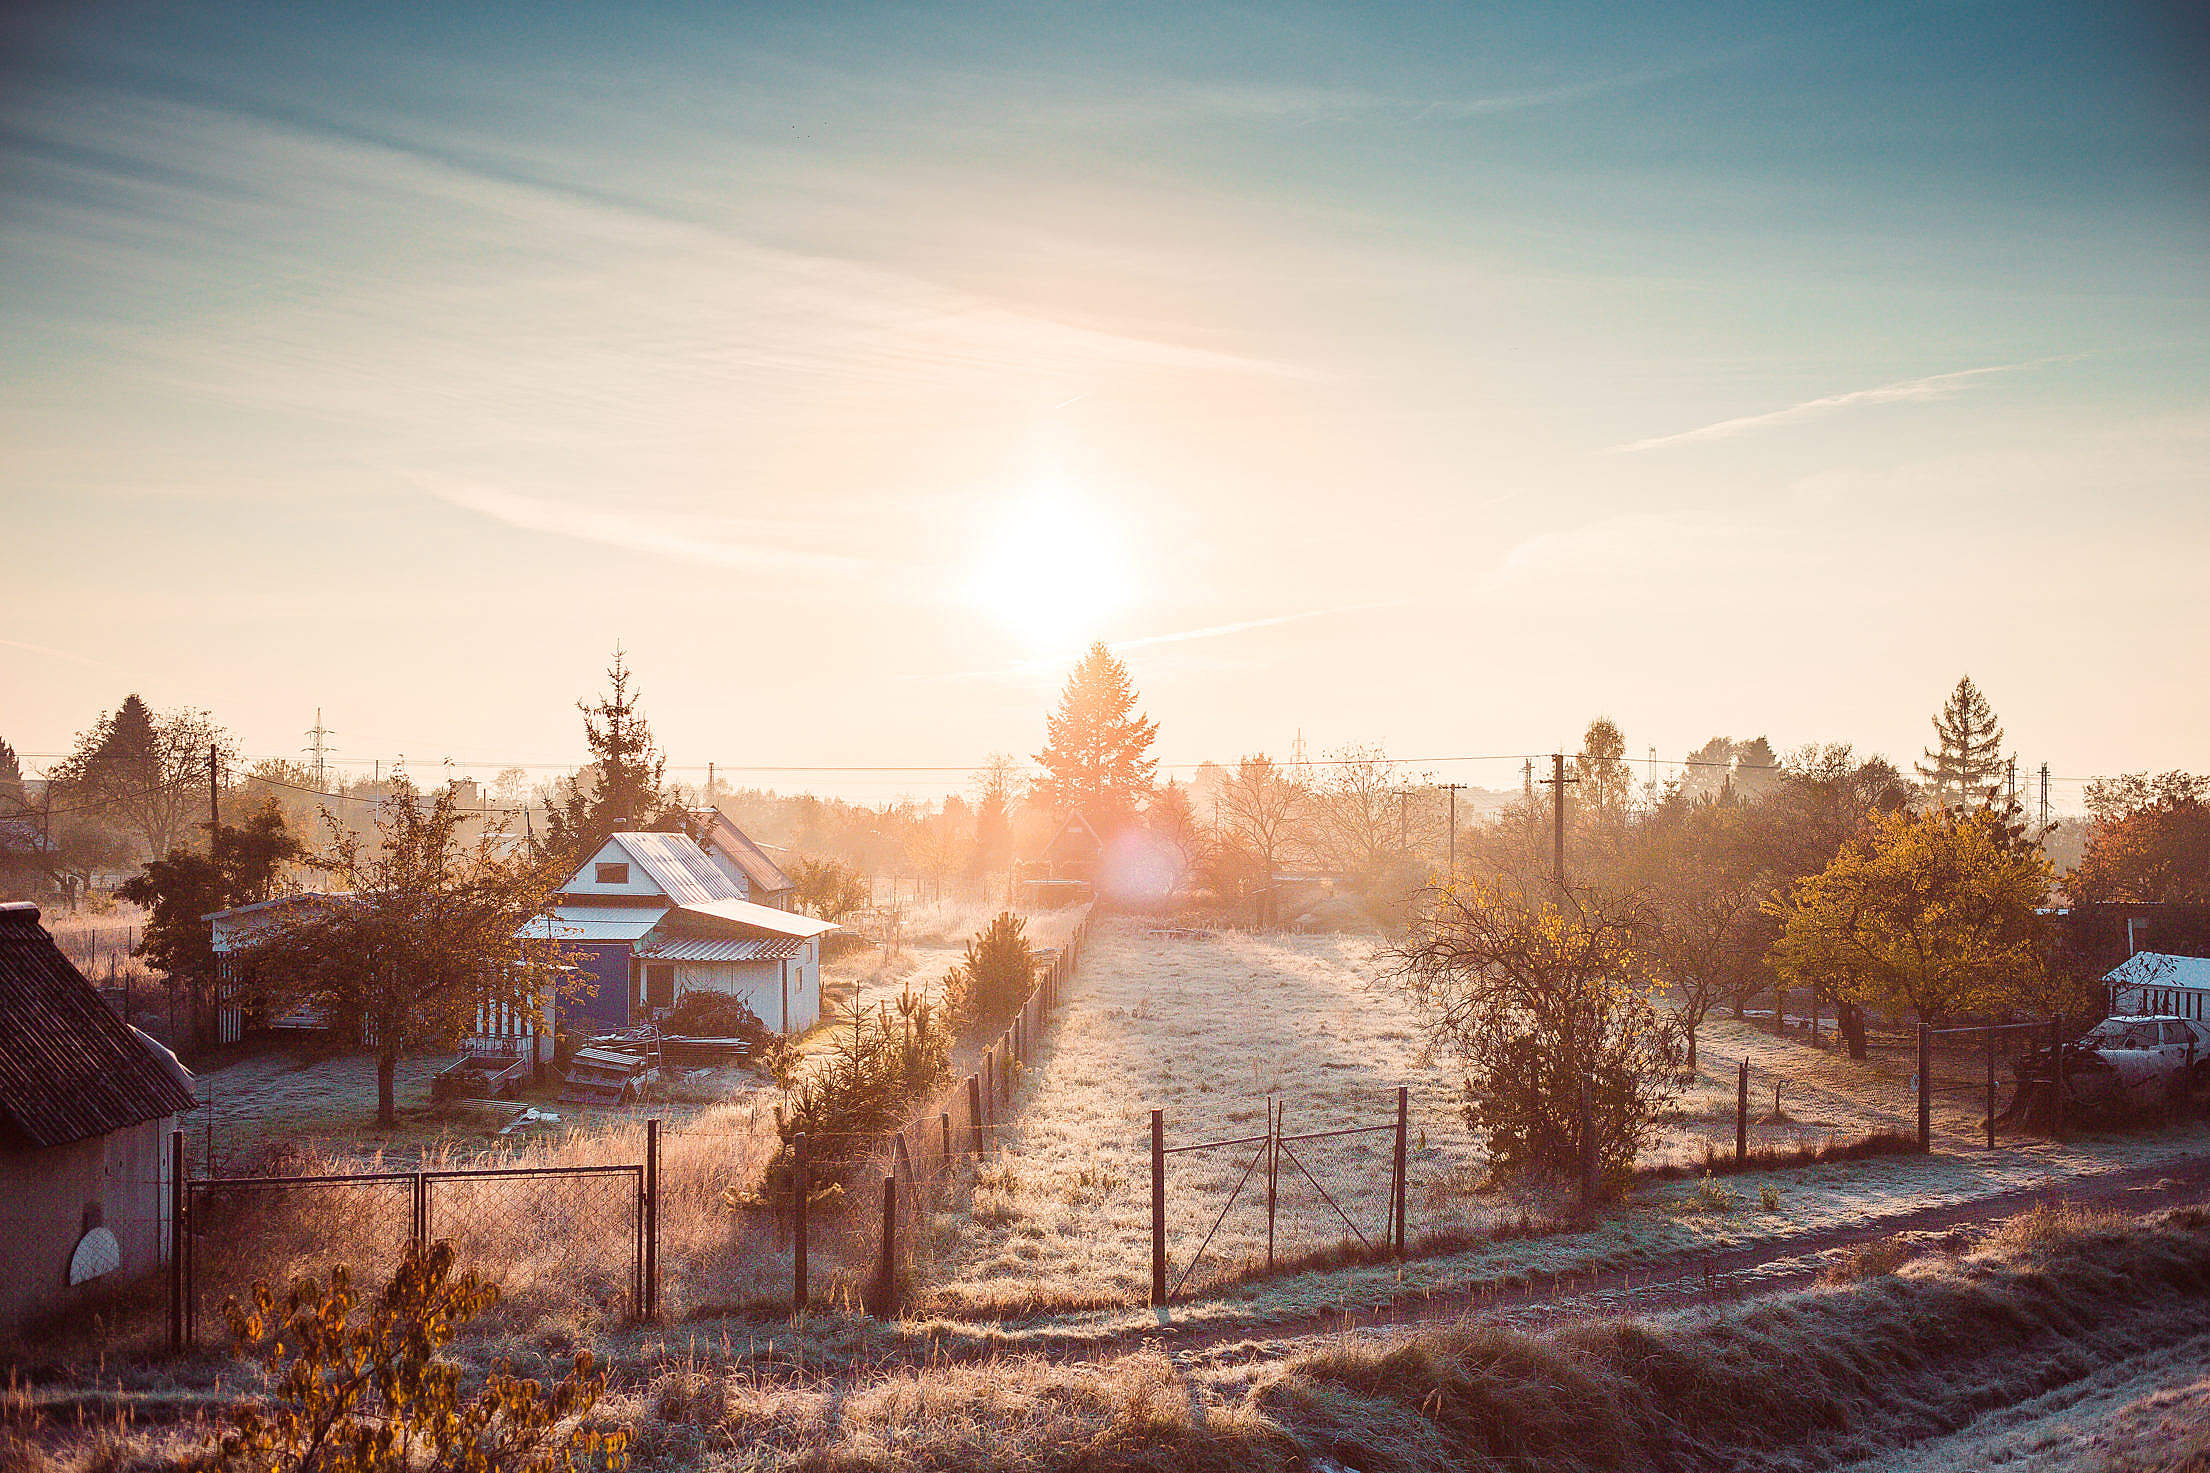 Cold Winter Morning over Gardening Colony Free Stock Photo